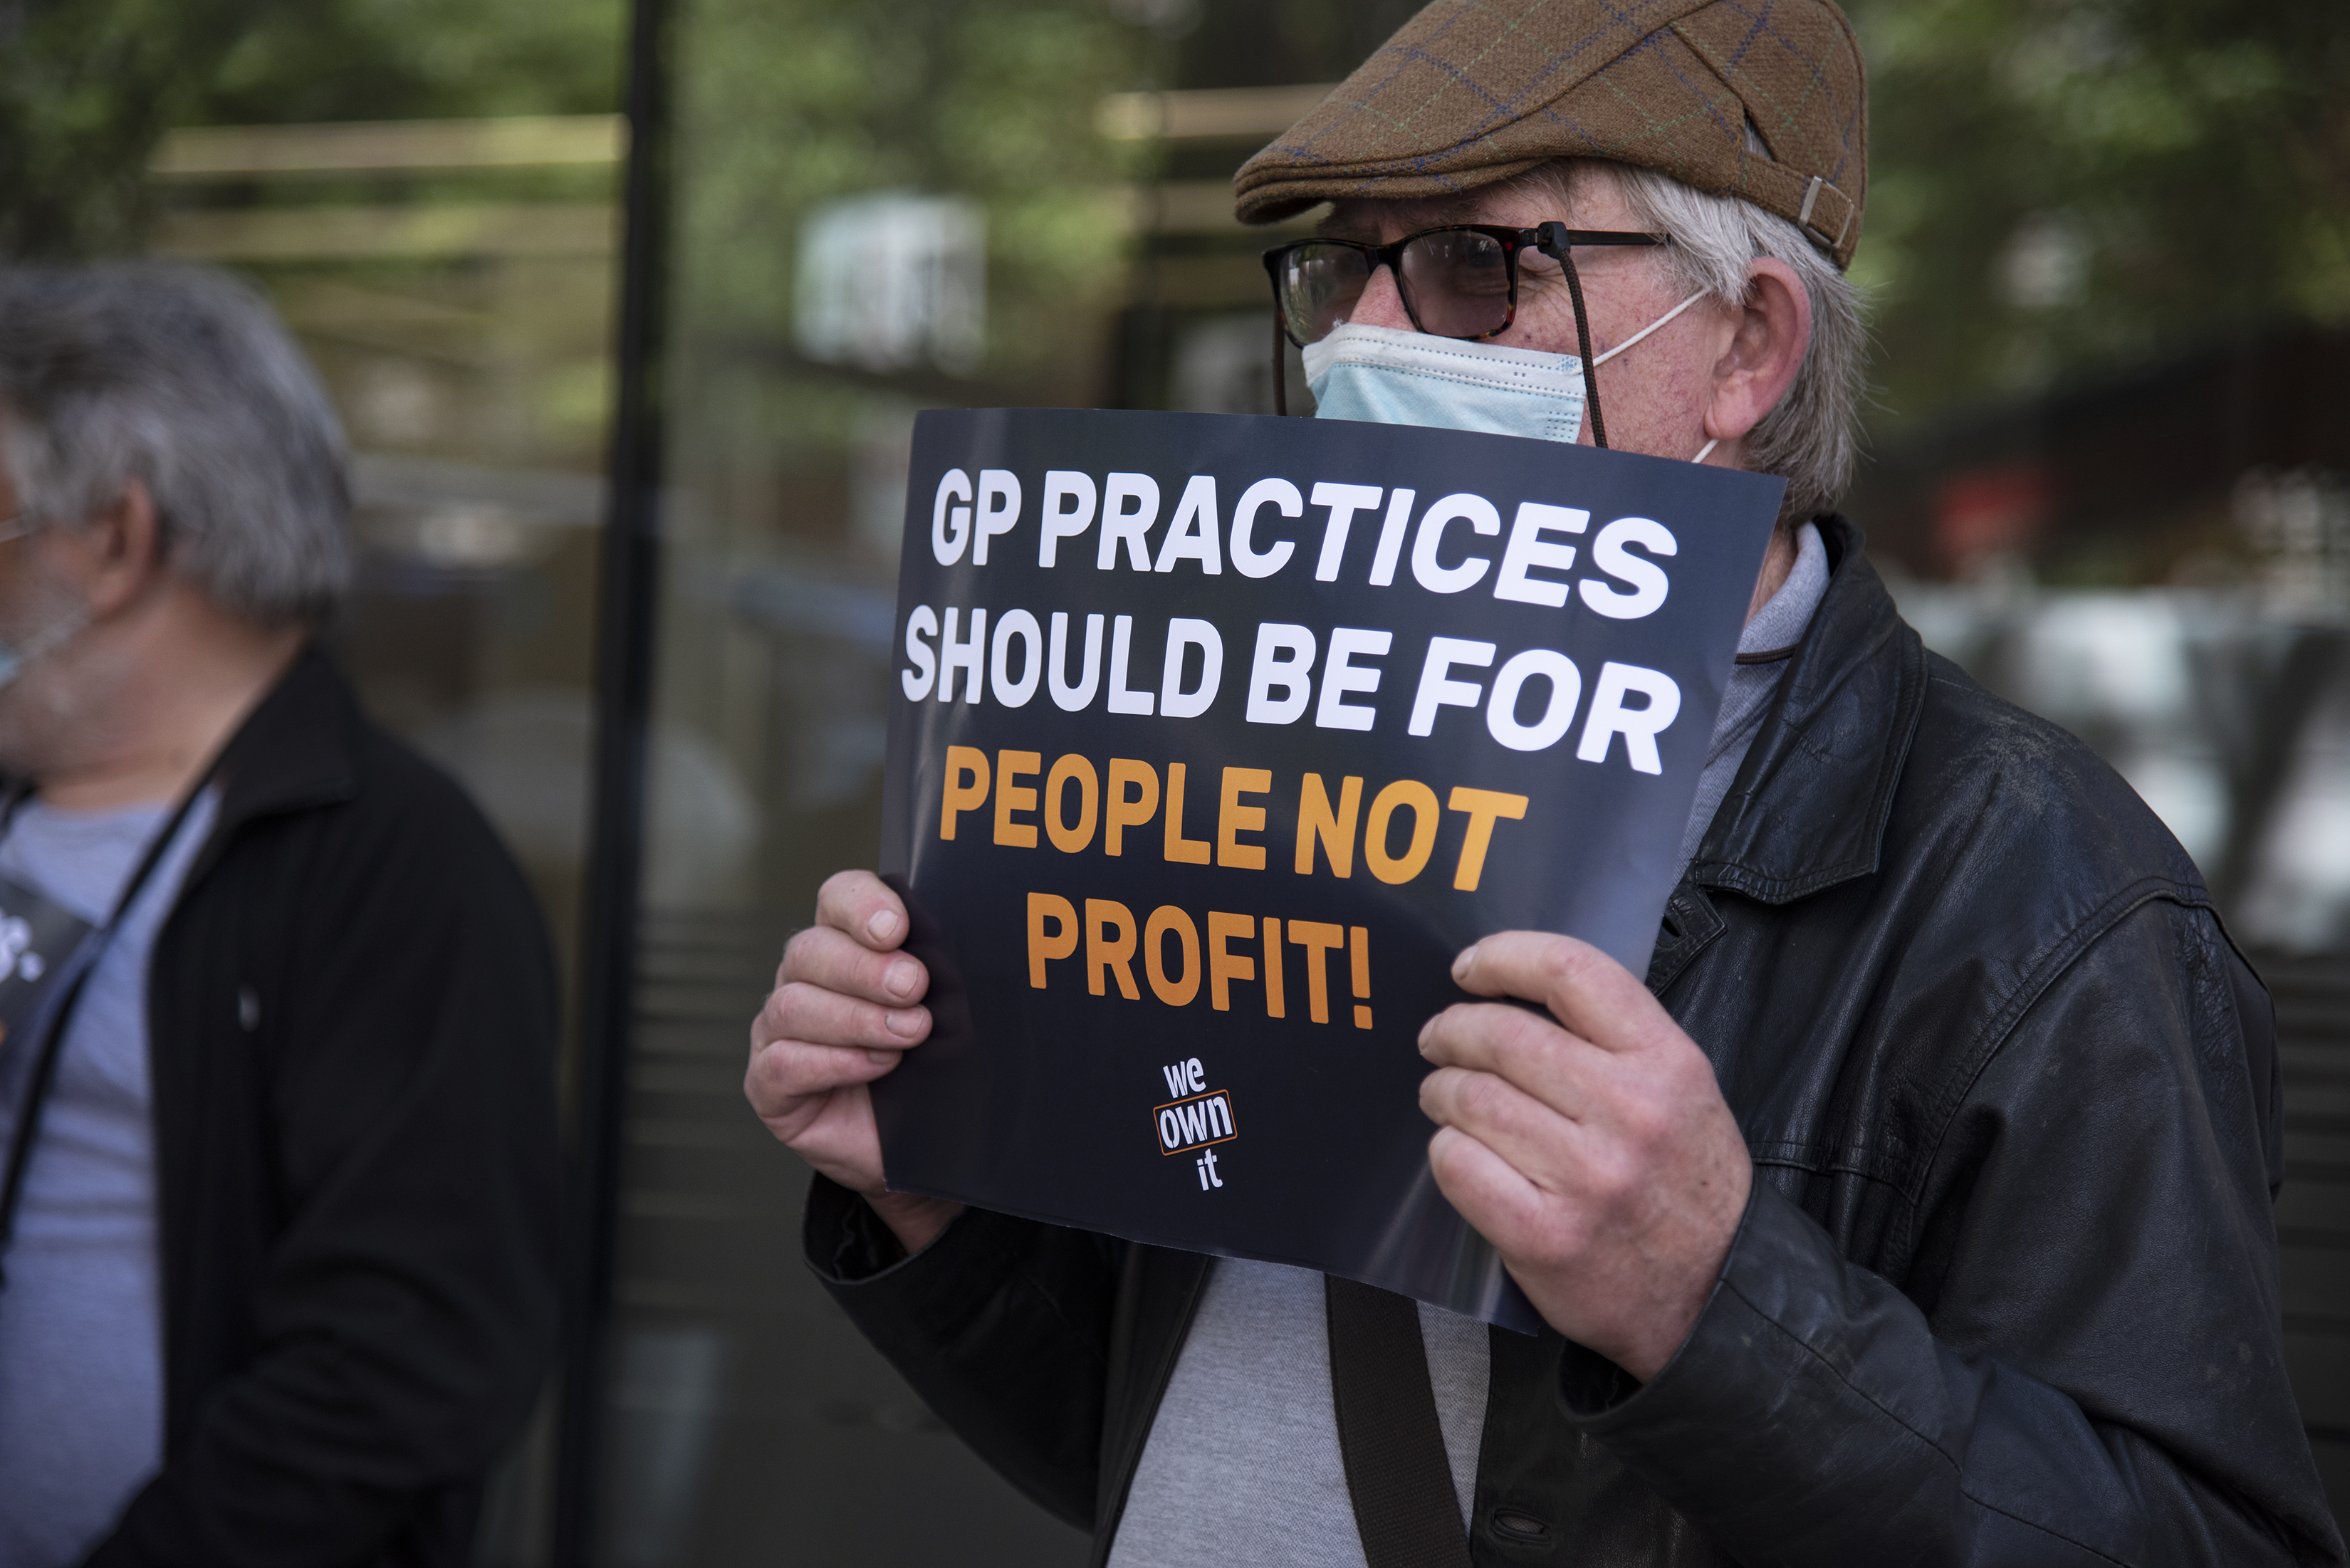 <p>A protester holding a placard expressing his opinion during the demonstration. Workers in the medical field protest against the contract renewals of further GP surgeries being taken over by the profit-greedy US healthcare giant which has become the largest single private primary care provider in England. (Photo by Loredana Sangiuliano / SOPA Images/Sipa USA)</p>